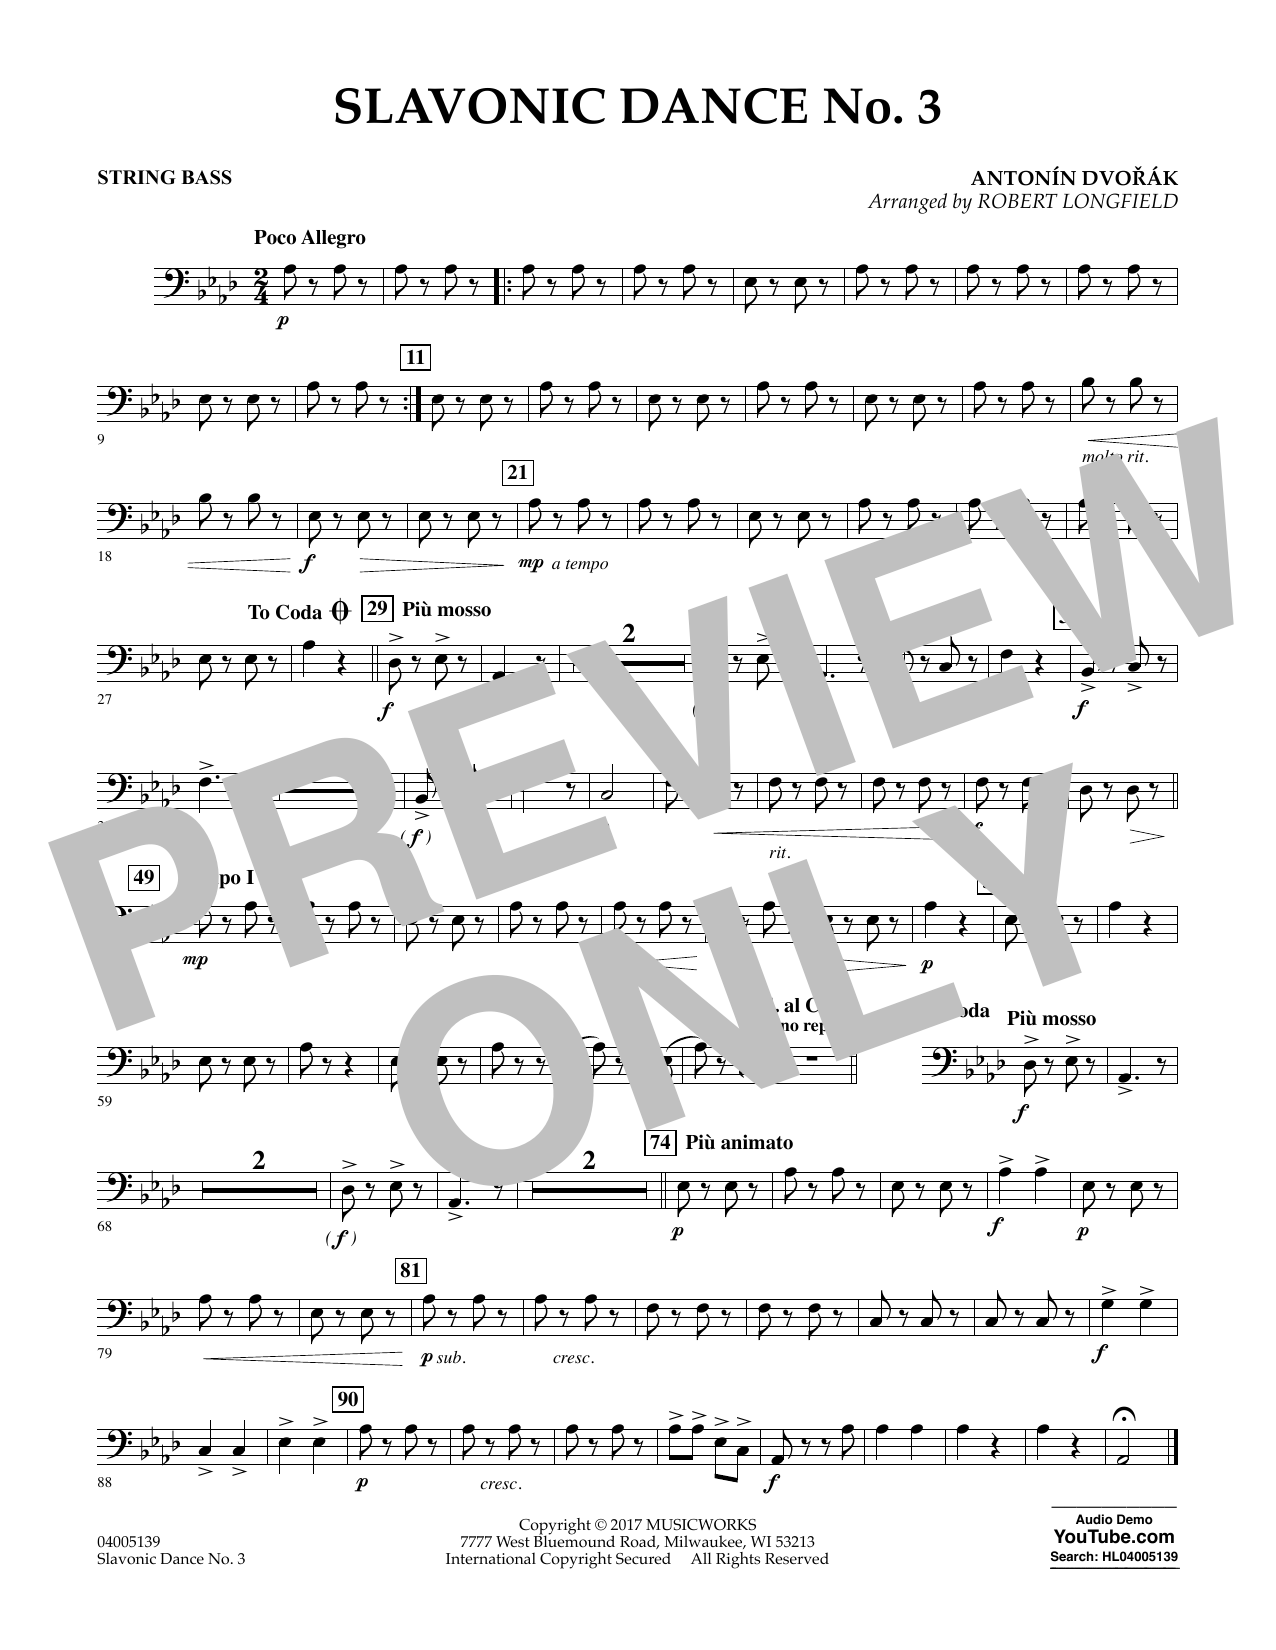 Robert Longfield Slavonic Dance No. 3 - String Bass sheet music notes and chords. Download Printable PDF.